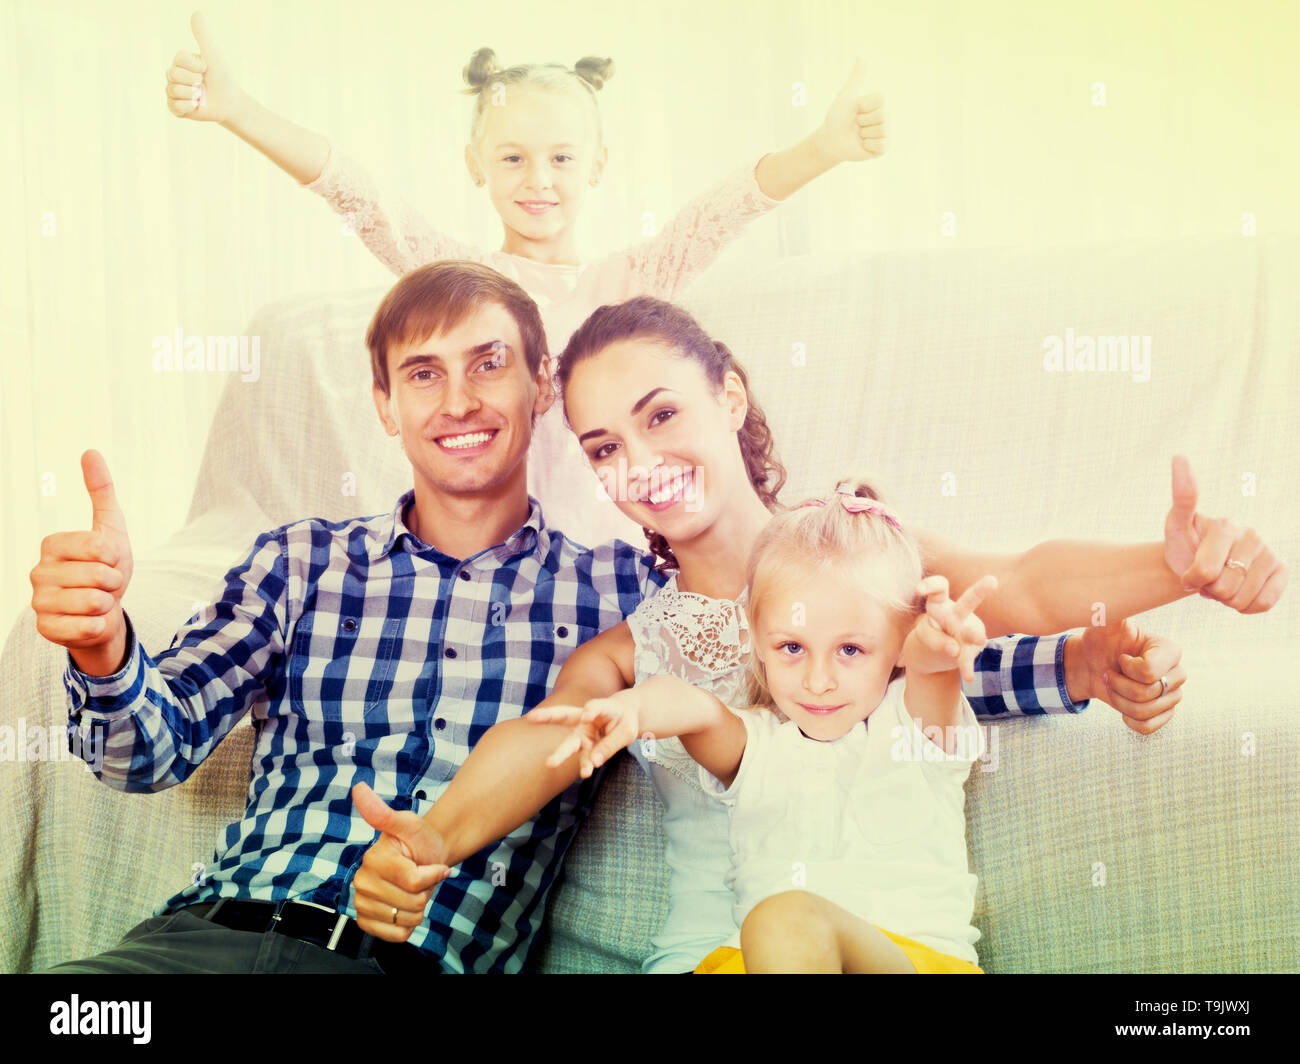 Relaxed smiling family of four persons posing in domestic interior - Stock Image